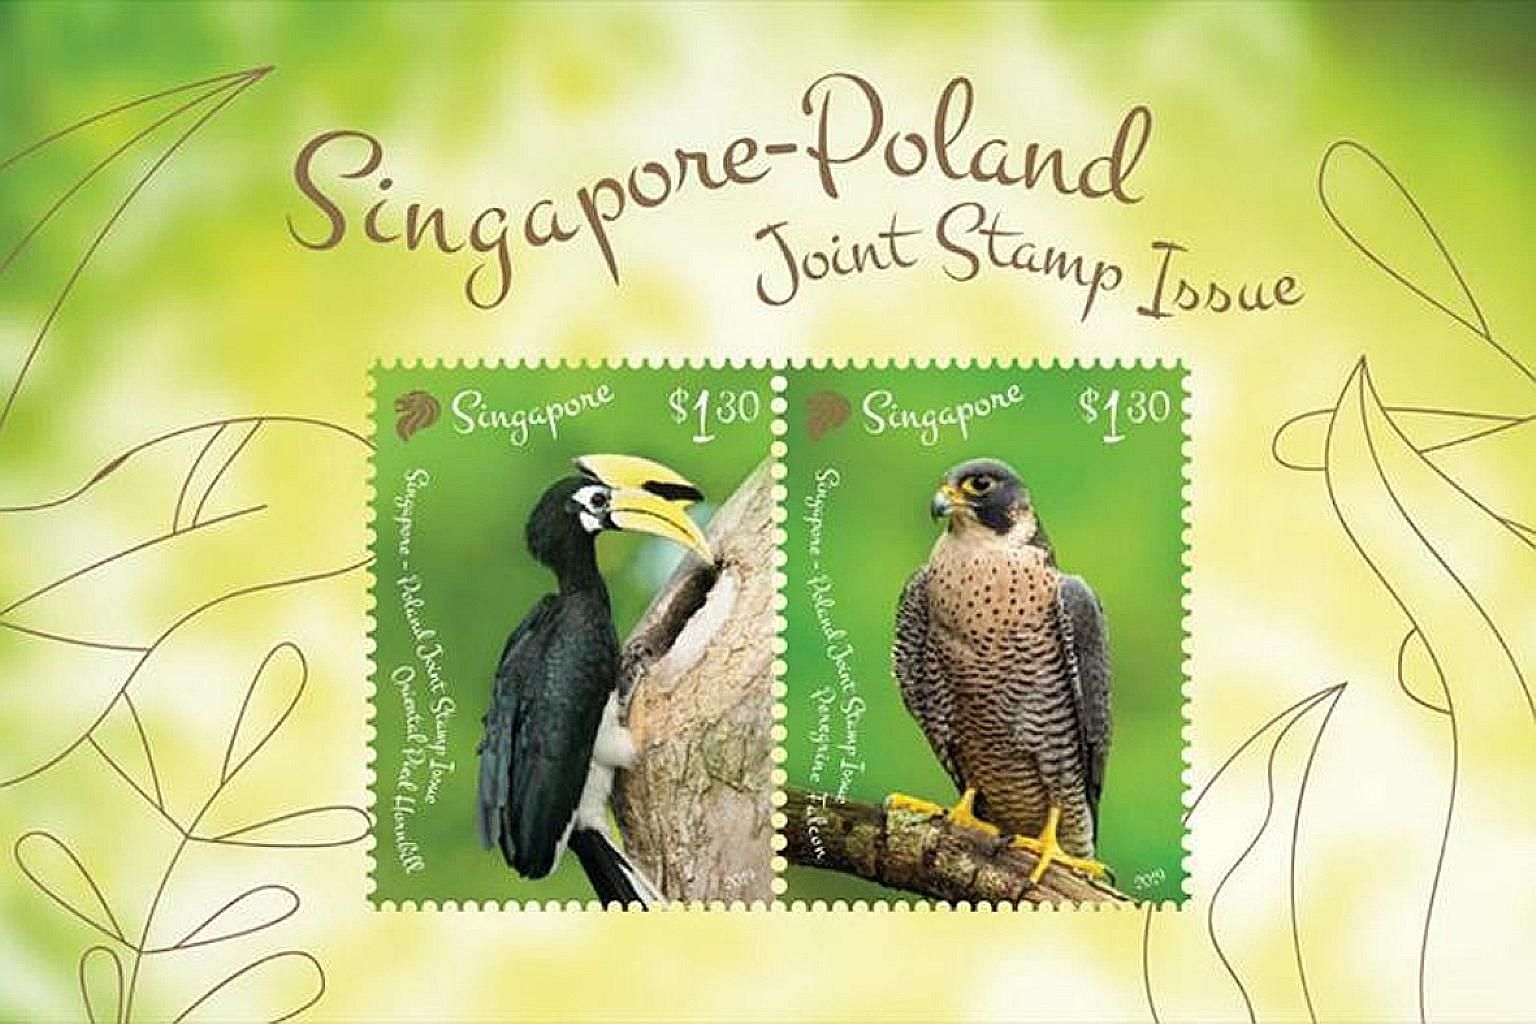 To symbolise the two countries' shared values and close friendship, the joint stamp issue features two birds, one native to each country. PHOTO: SINGPOST